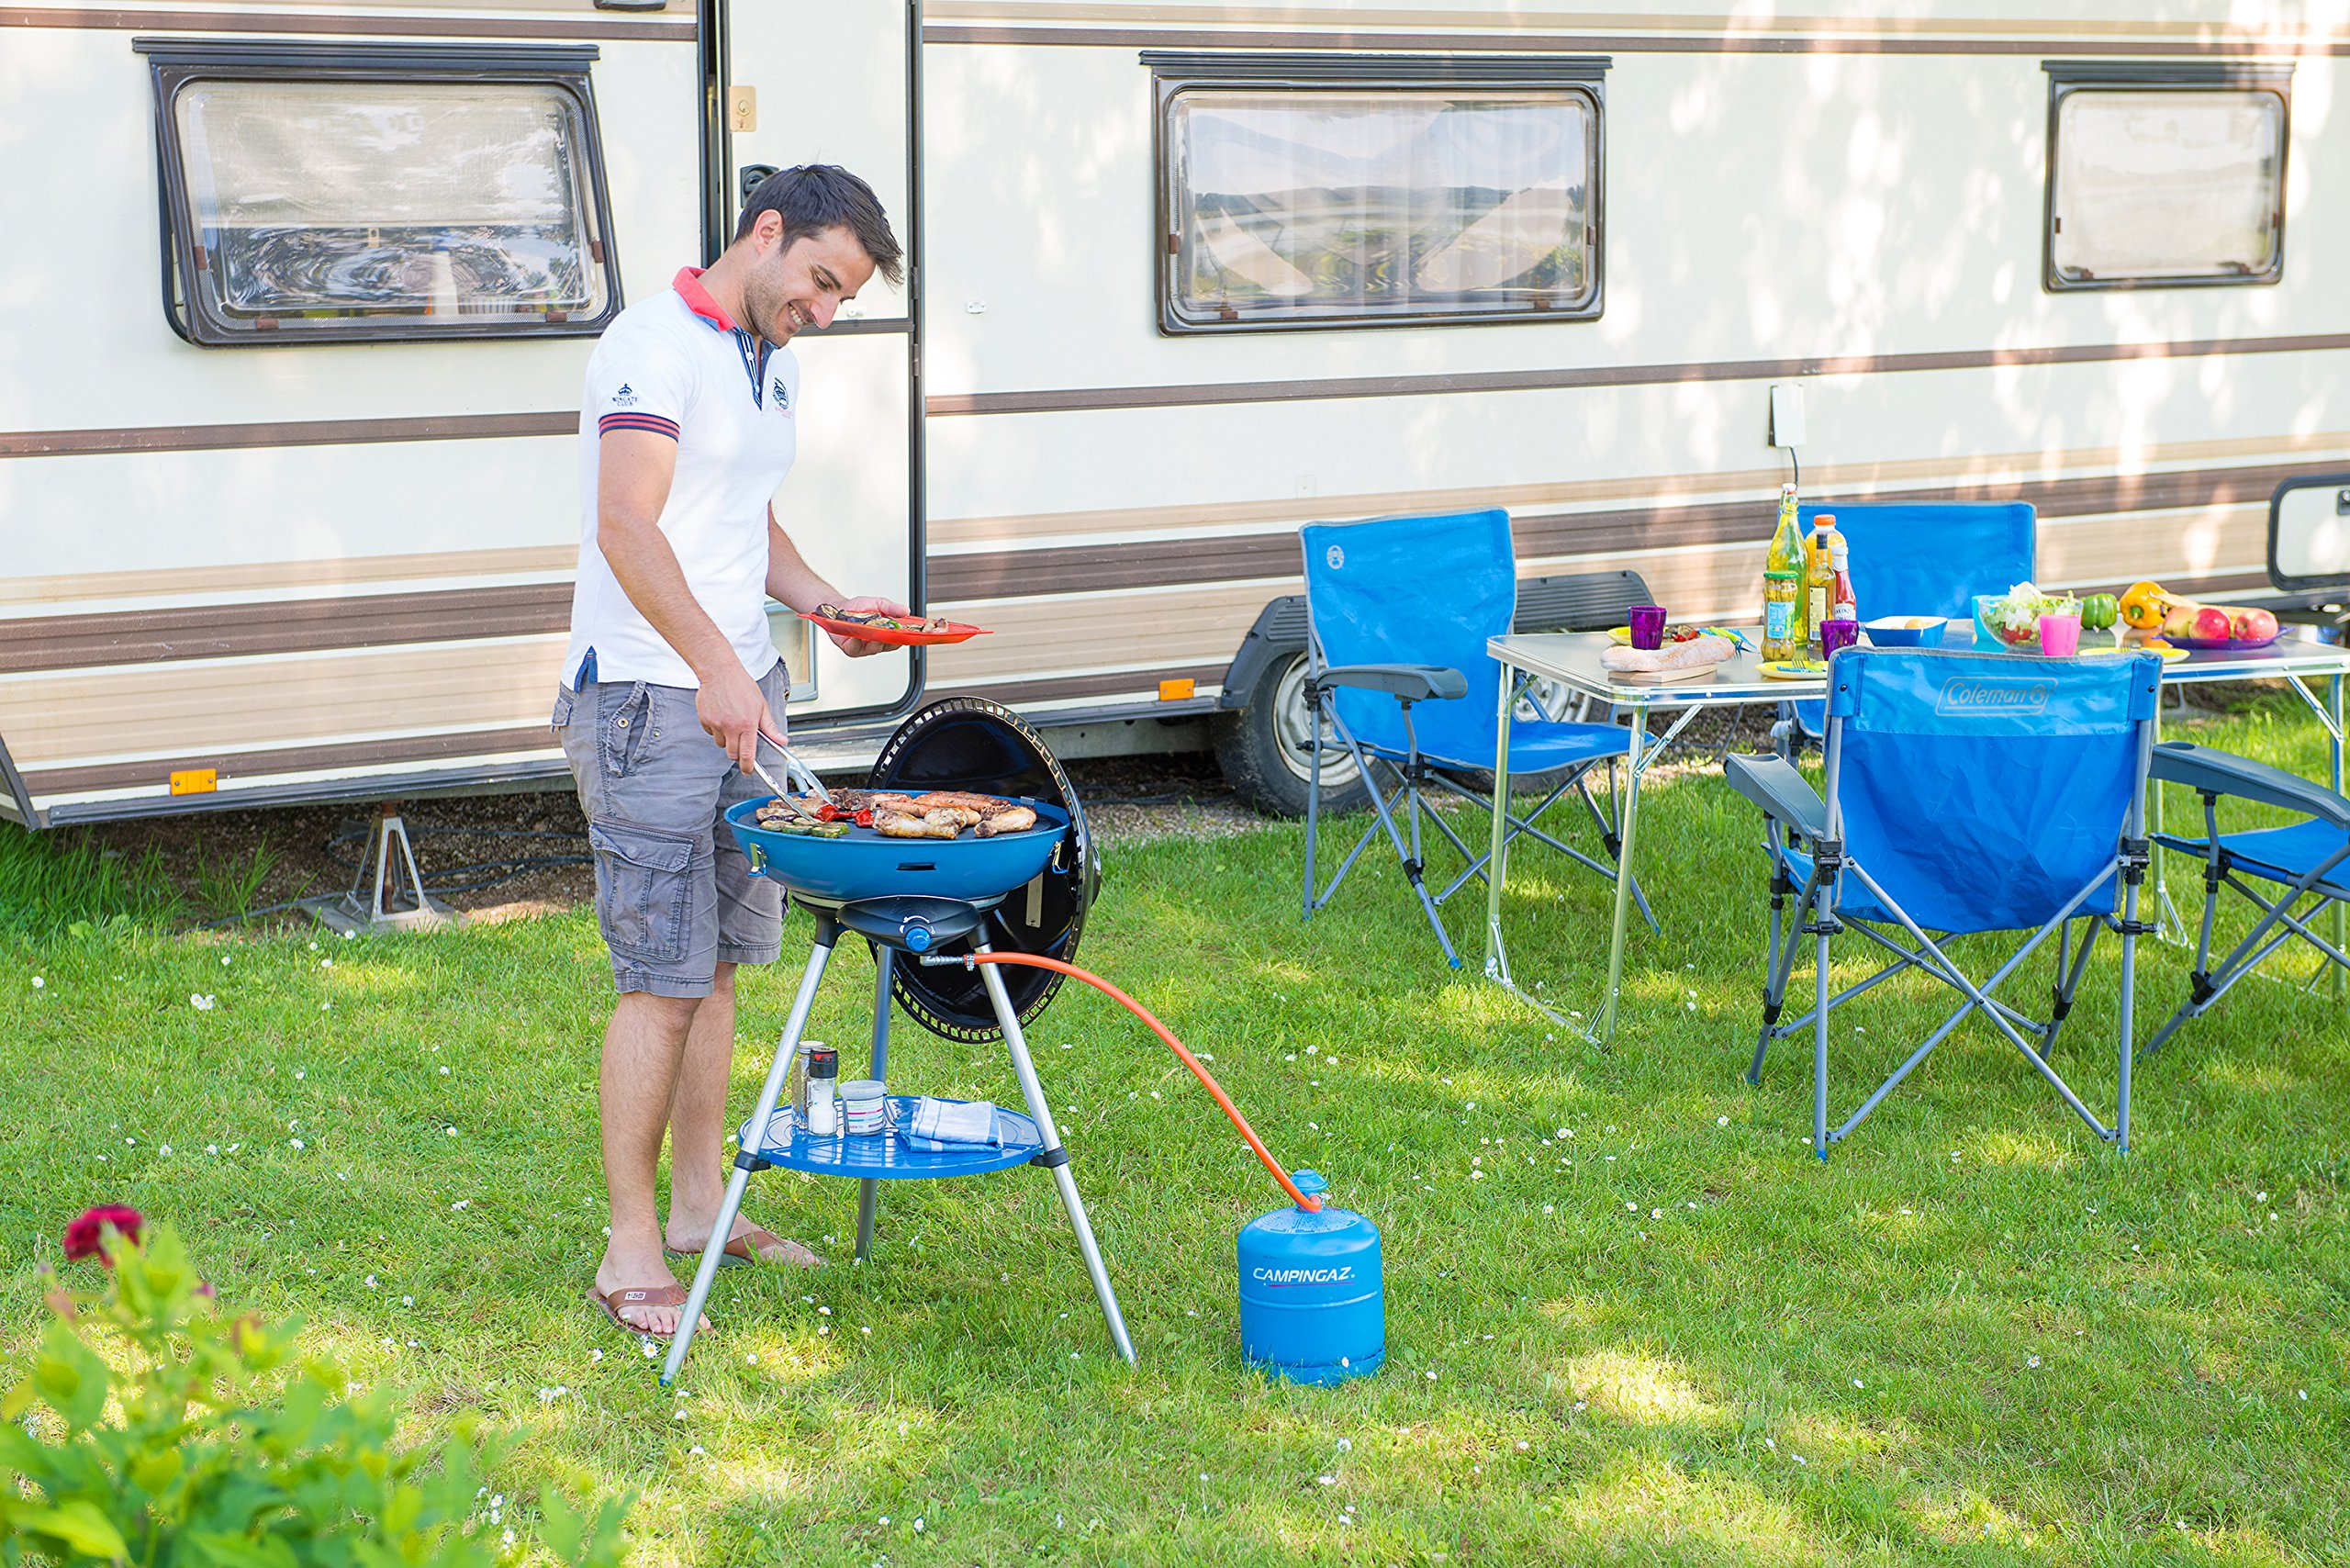 Campingaz, All in One portable Camping BBQ 6